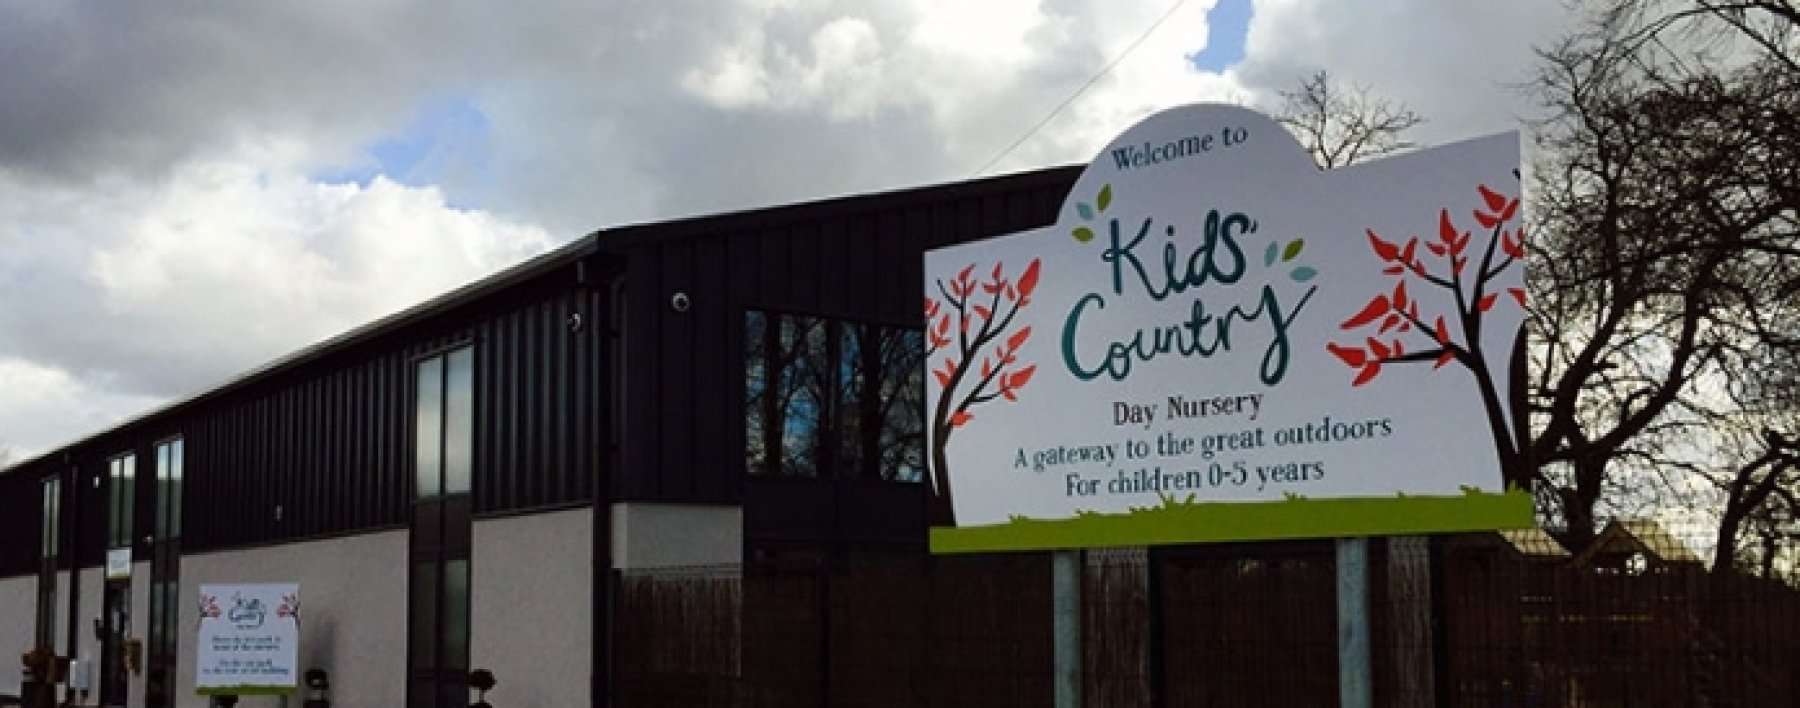 Kids Country Nursery Signage by Ast Signs